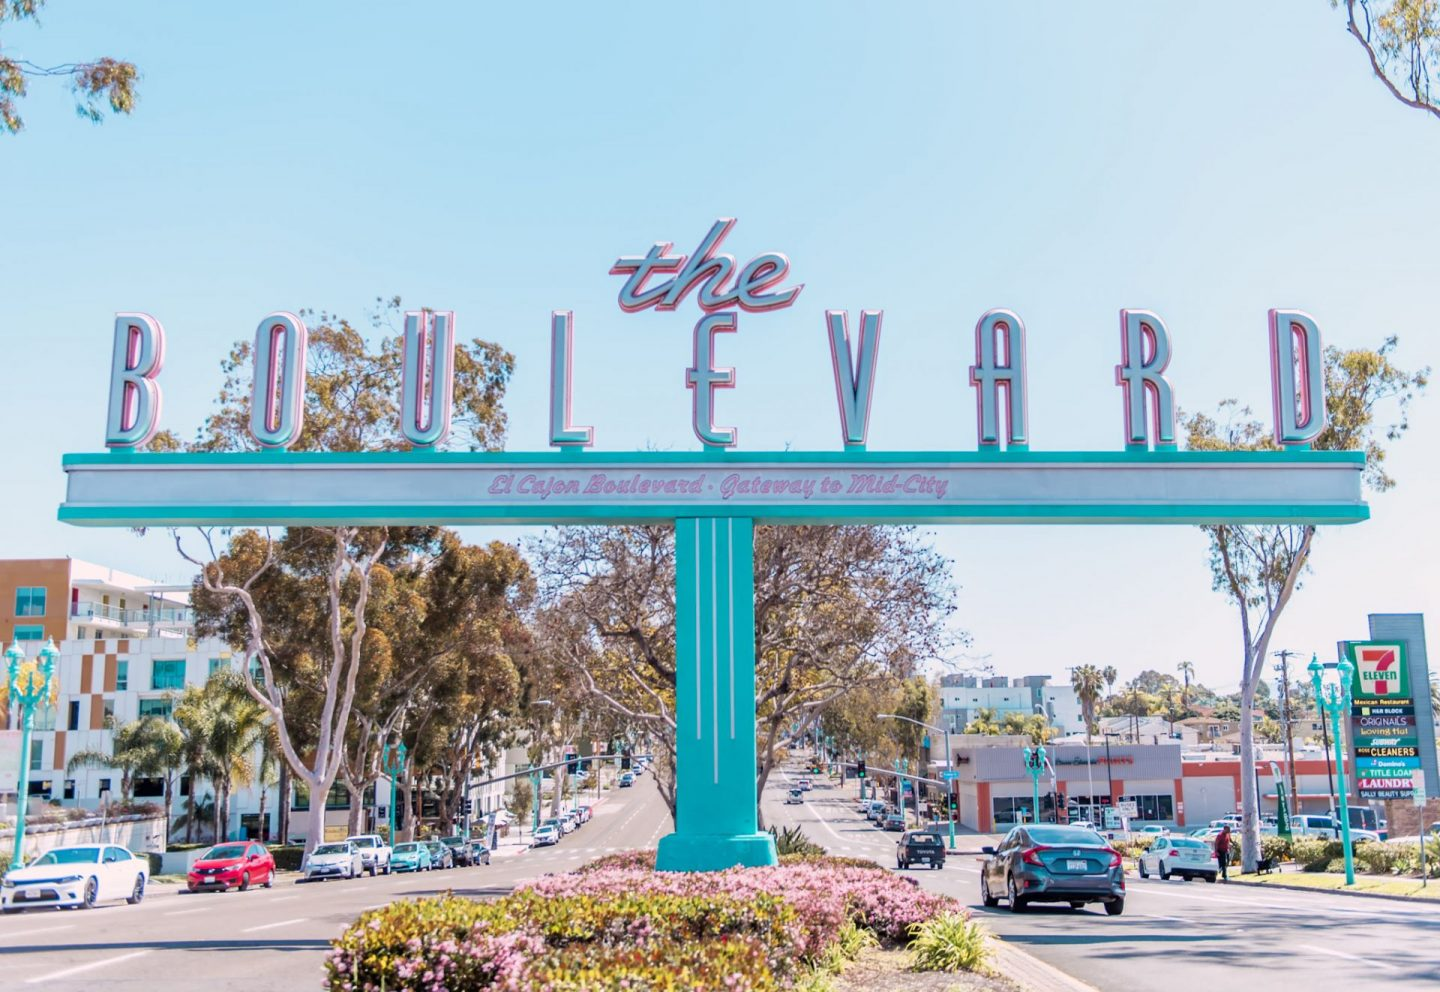 The boulevard sign in university heights san diego california